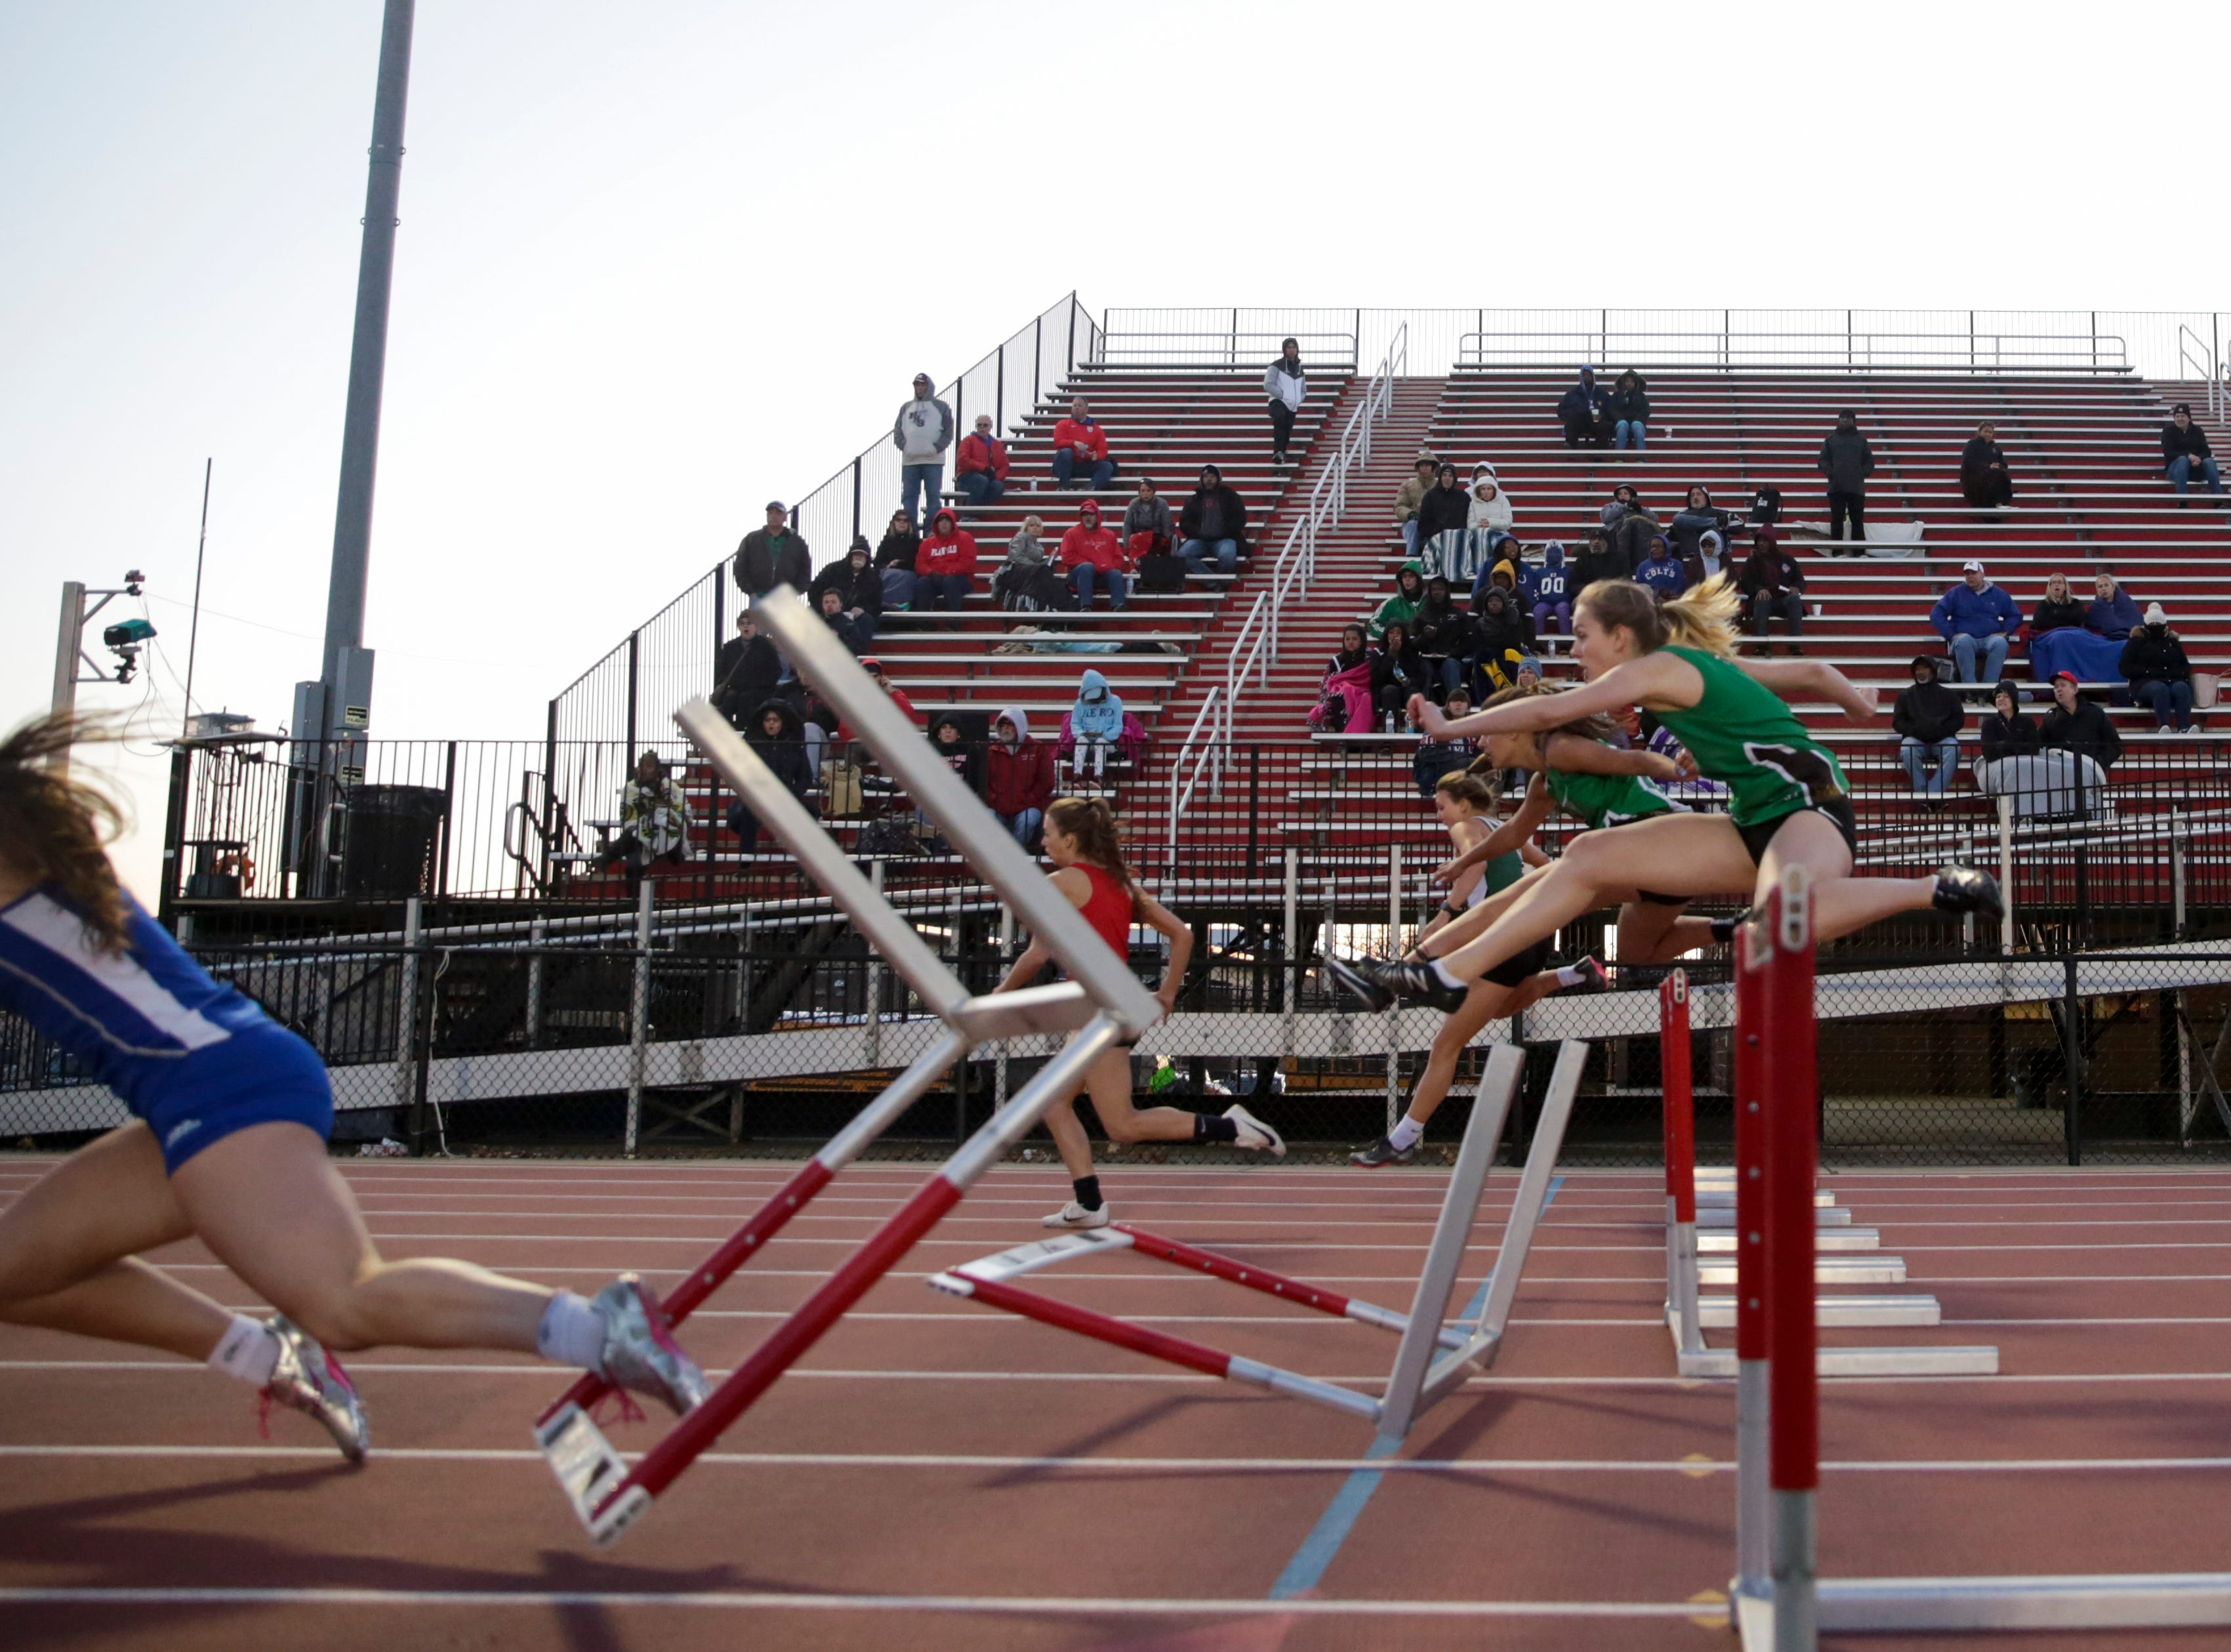 Runners fall while competing in the women's 100 meter hurdles during the 2019 Sprinters Showcase, Friday, April 12, 2019, at Lafayette Jeff High School in Lafayette.